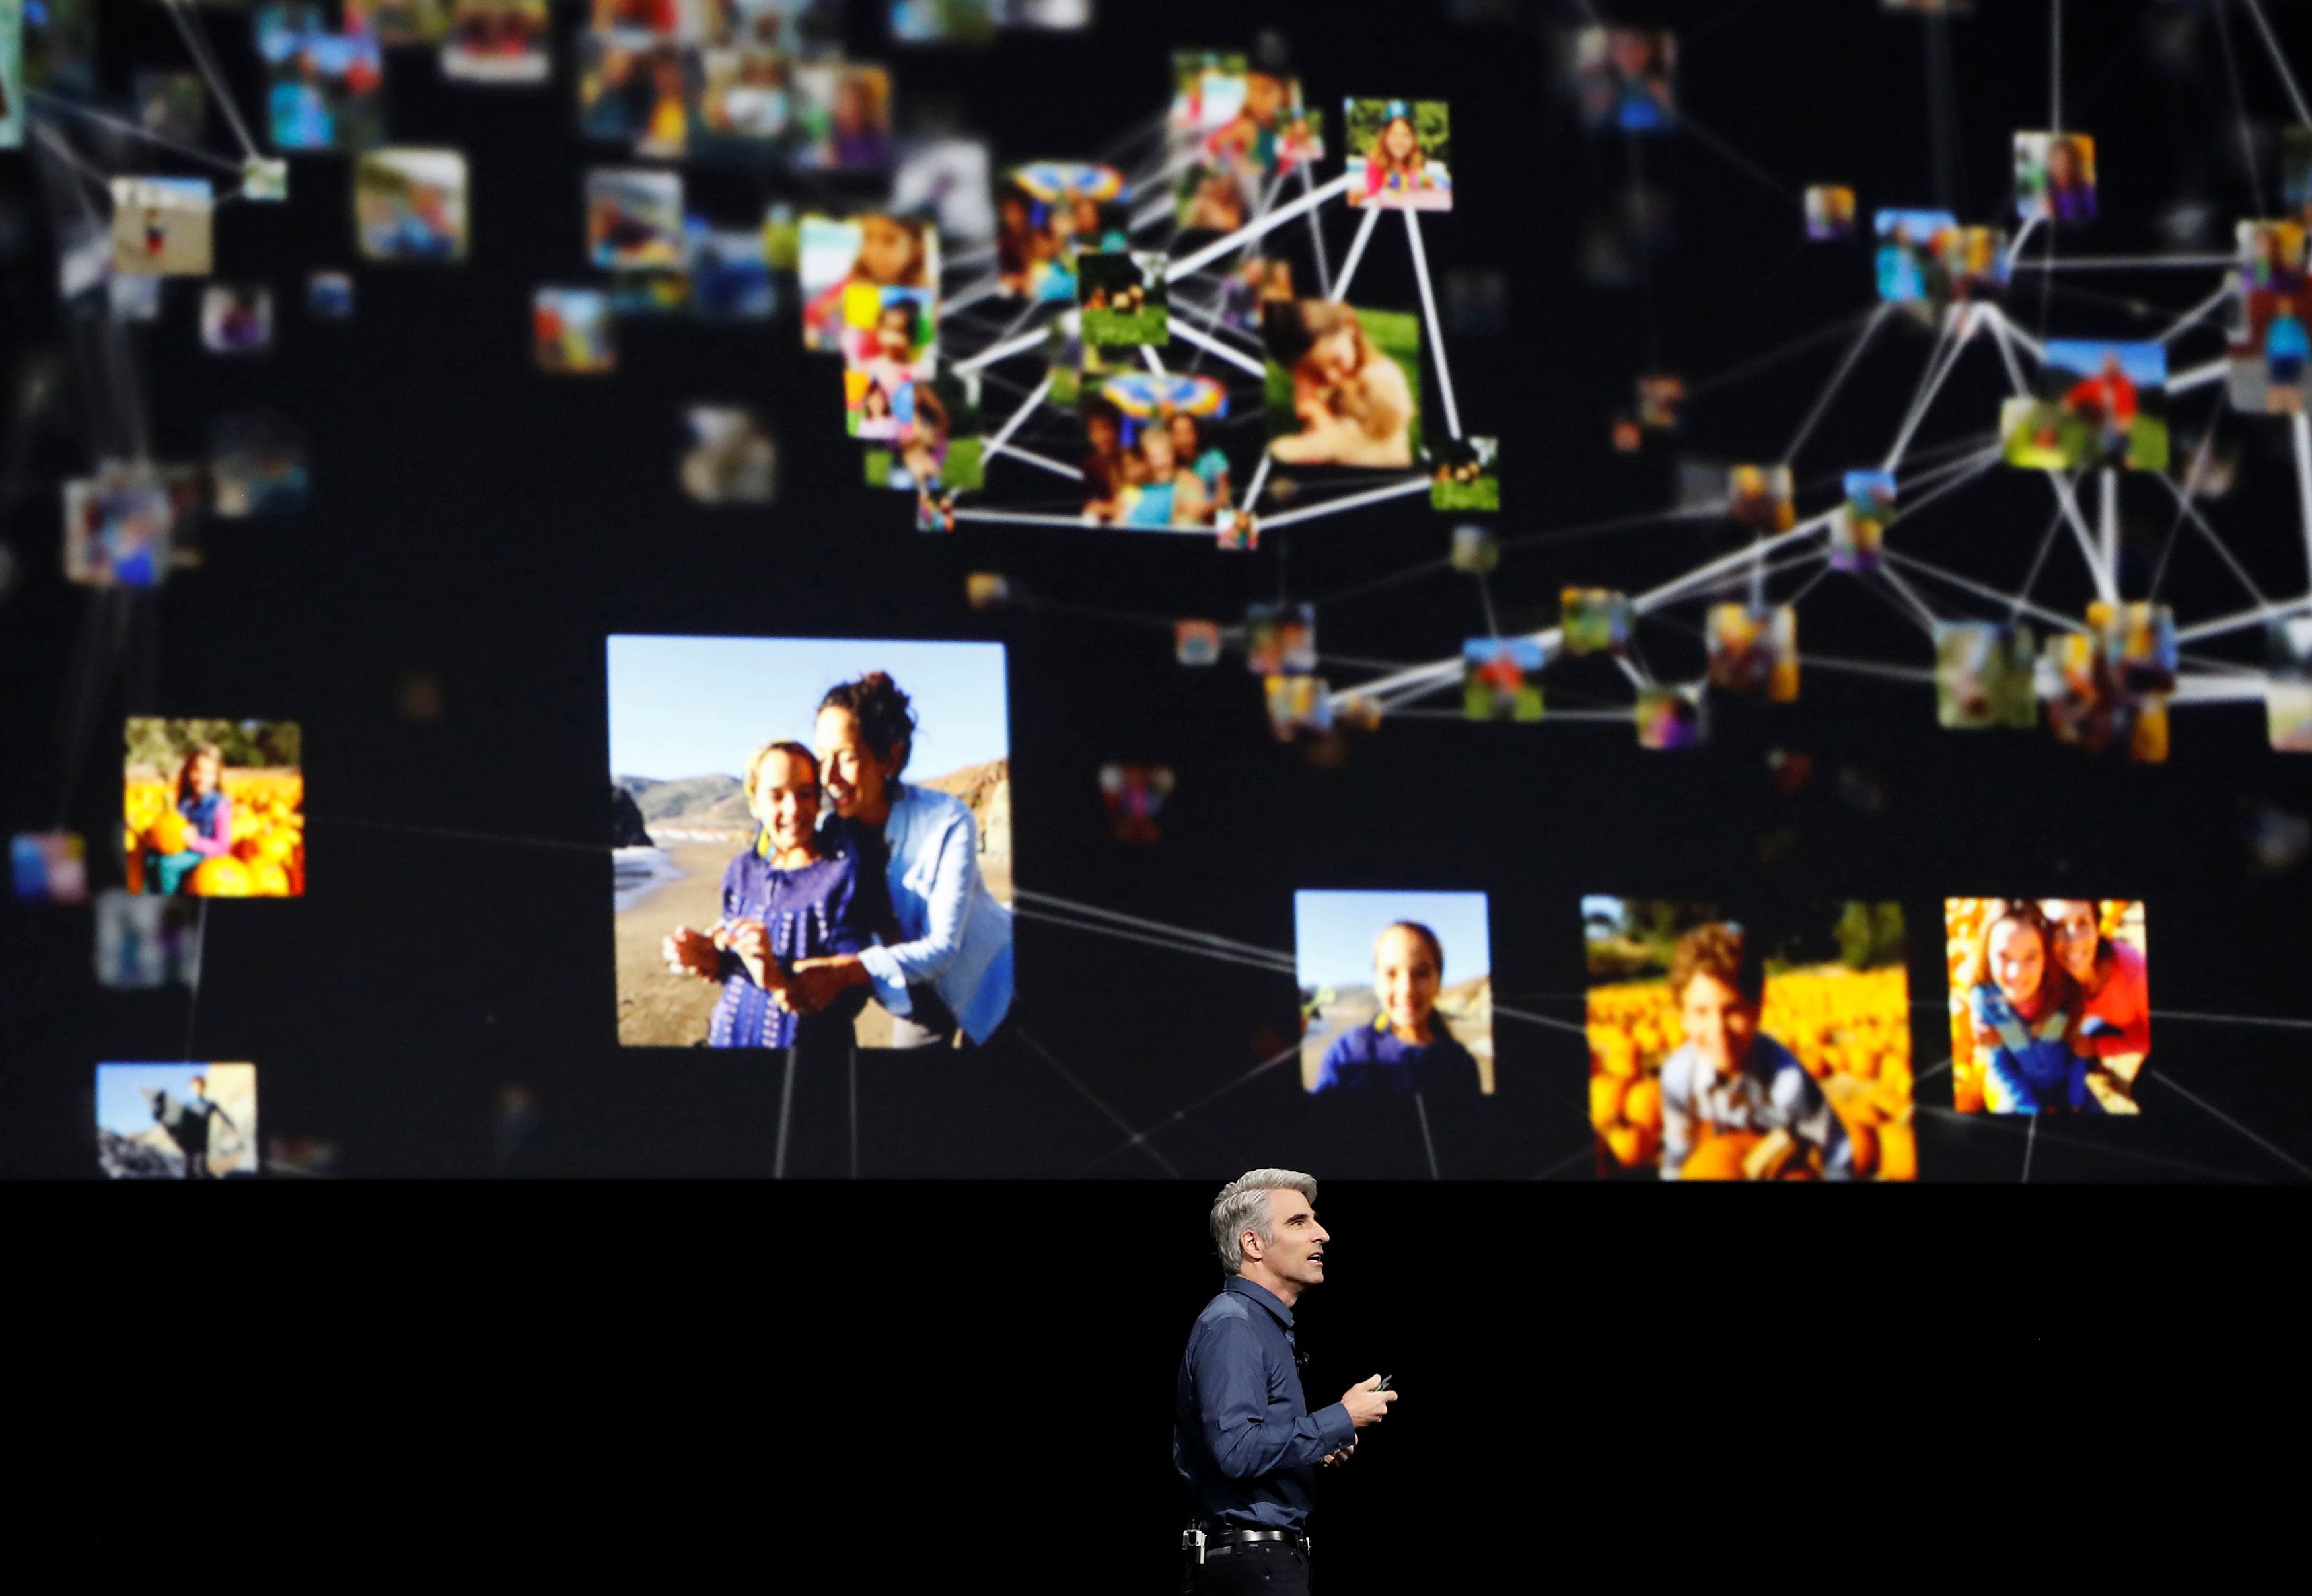 Craig Federighi of Apple Inc. talks about photos within iOS at the company's World Wide Developers Conference in San Francisco, California